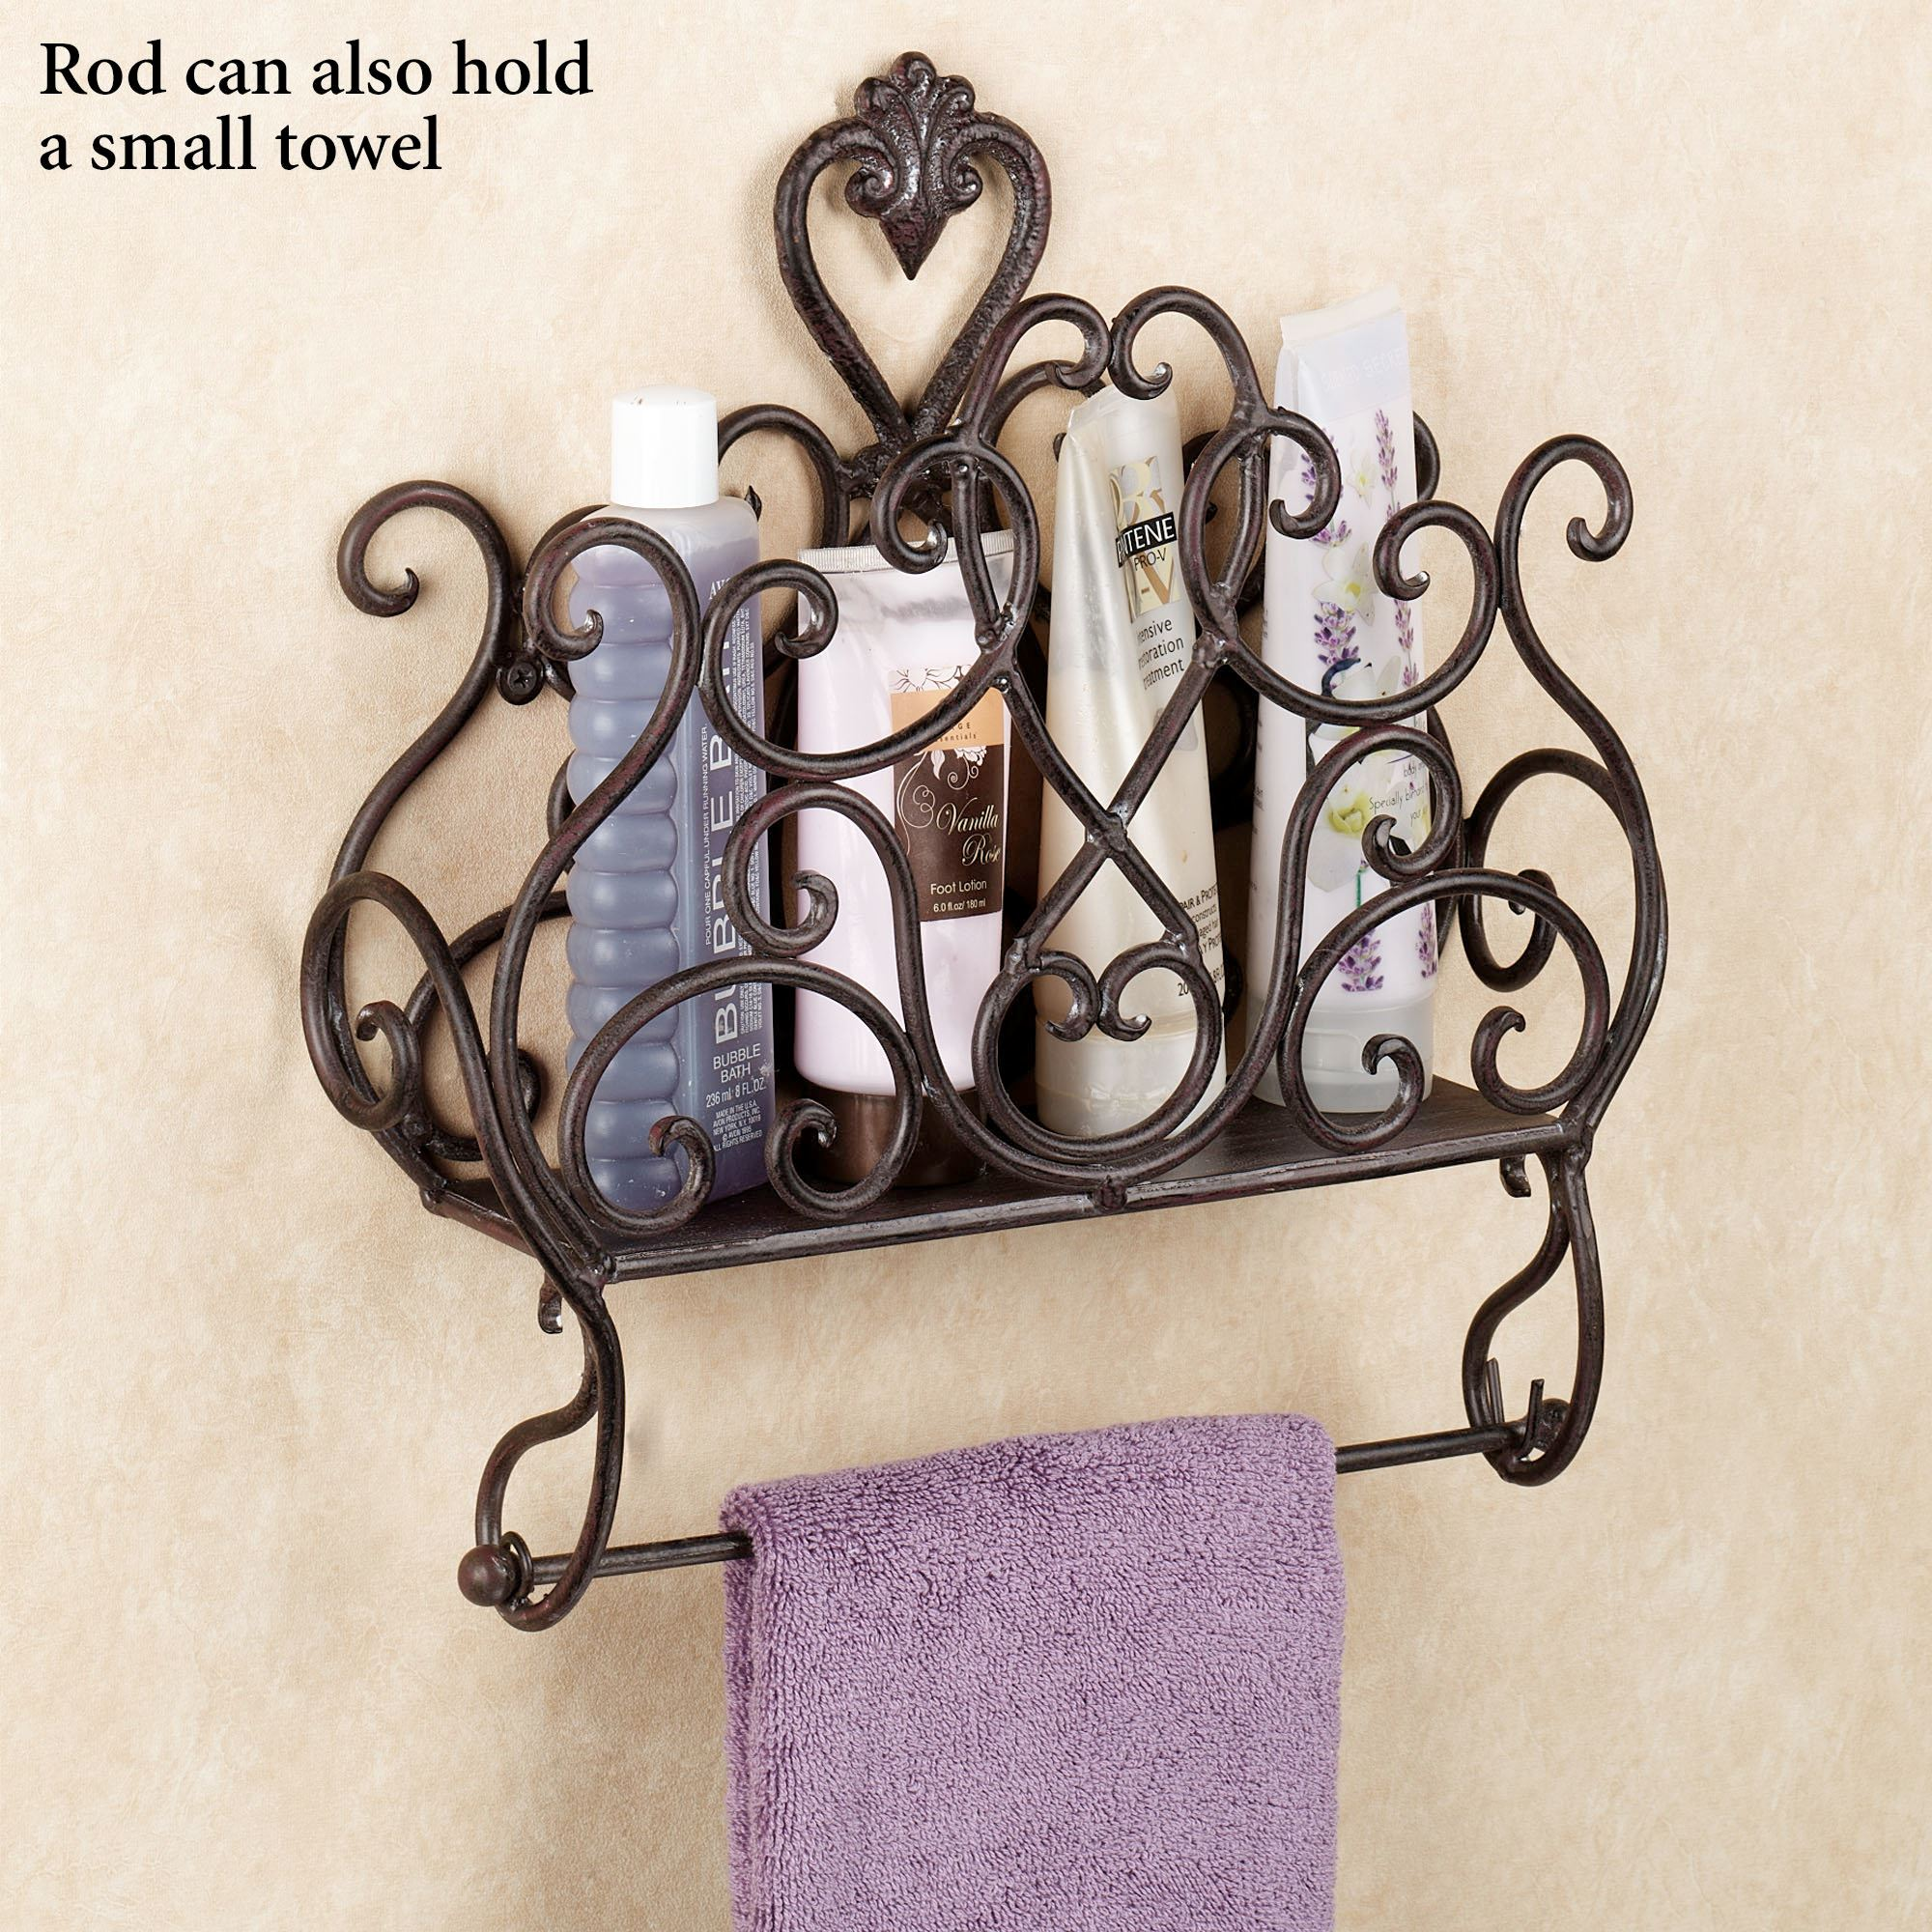 Aldabella wall magazine rack with toilet paper holder - Bathroom towel and toilet paper holders ...